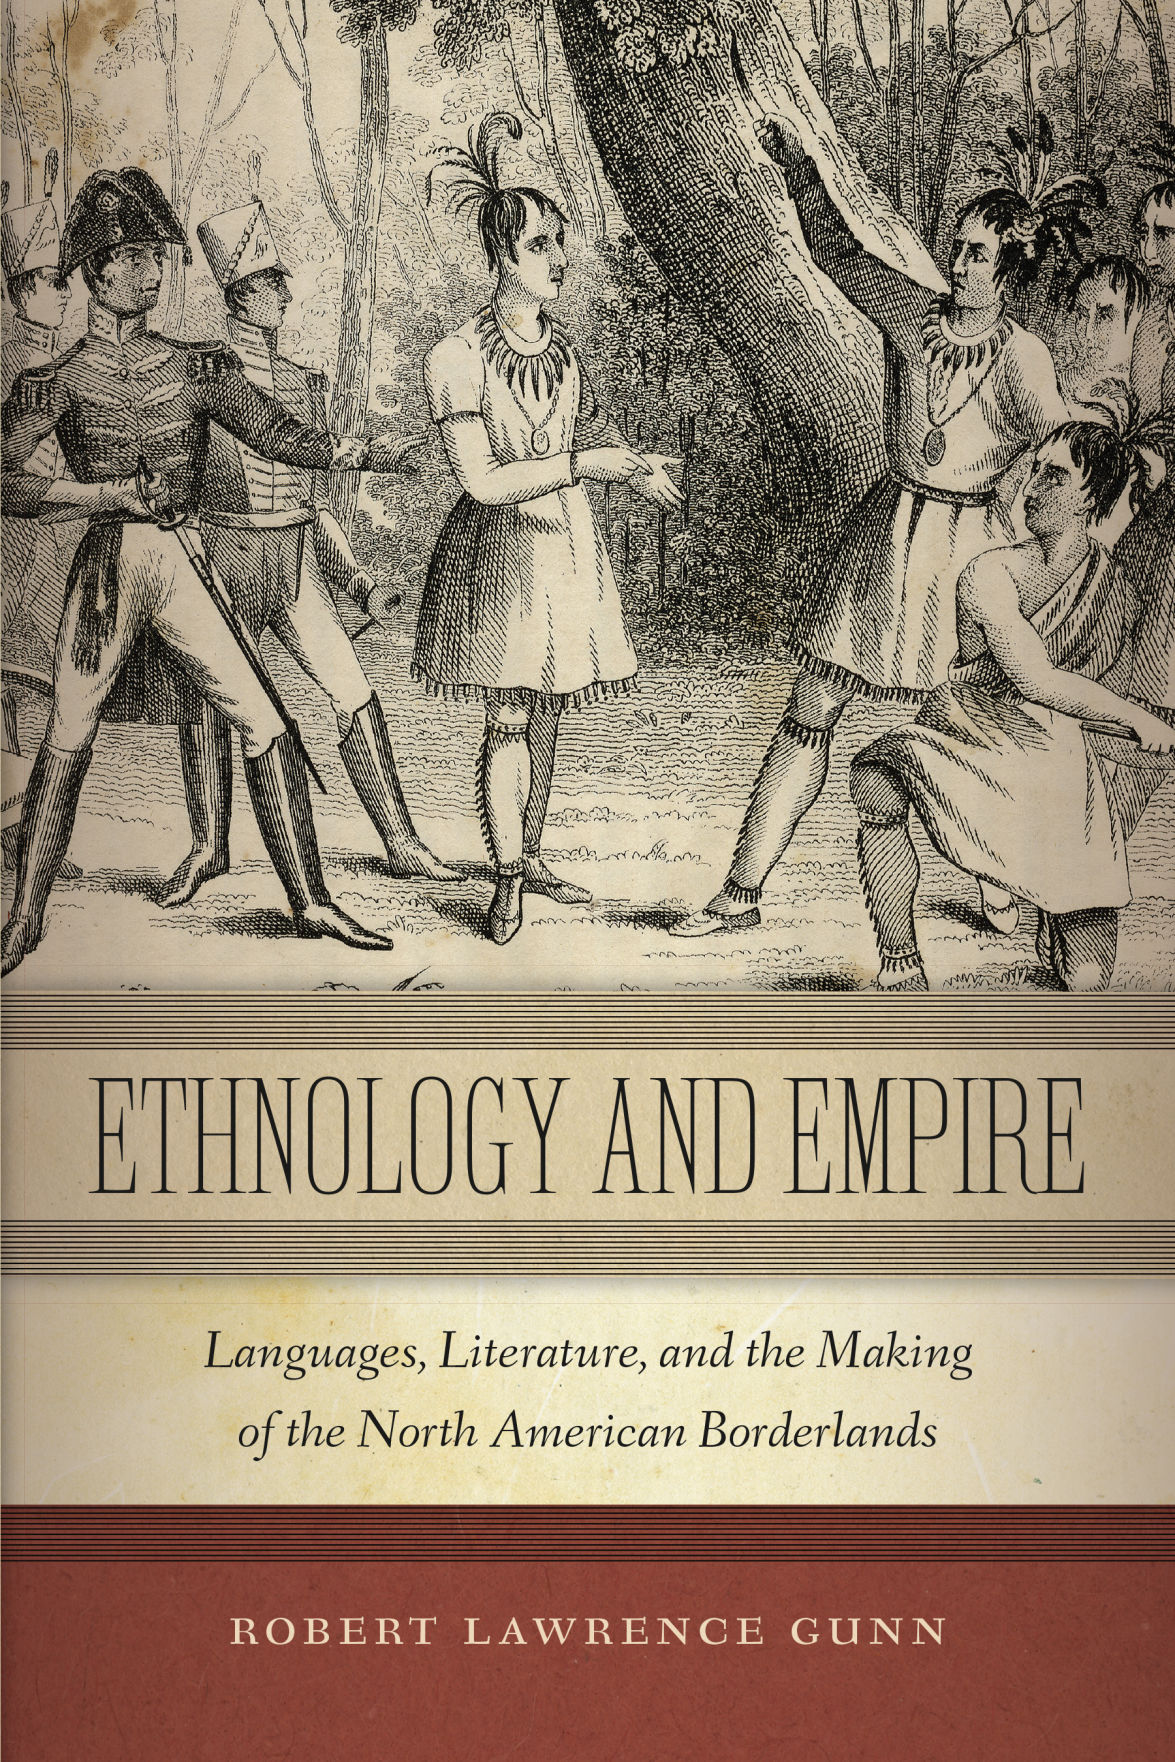 'Ethnology and Empire'